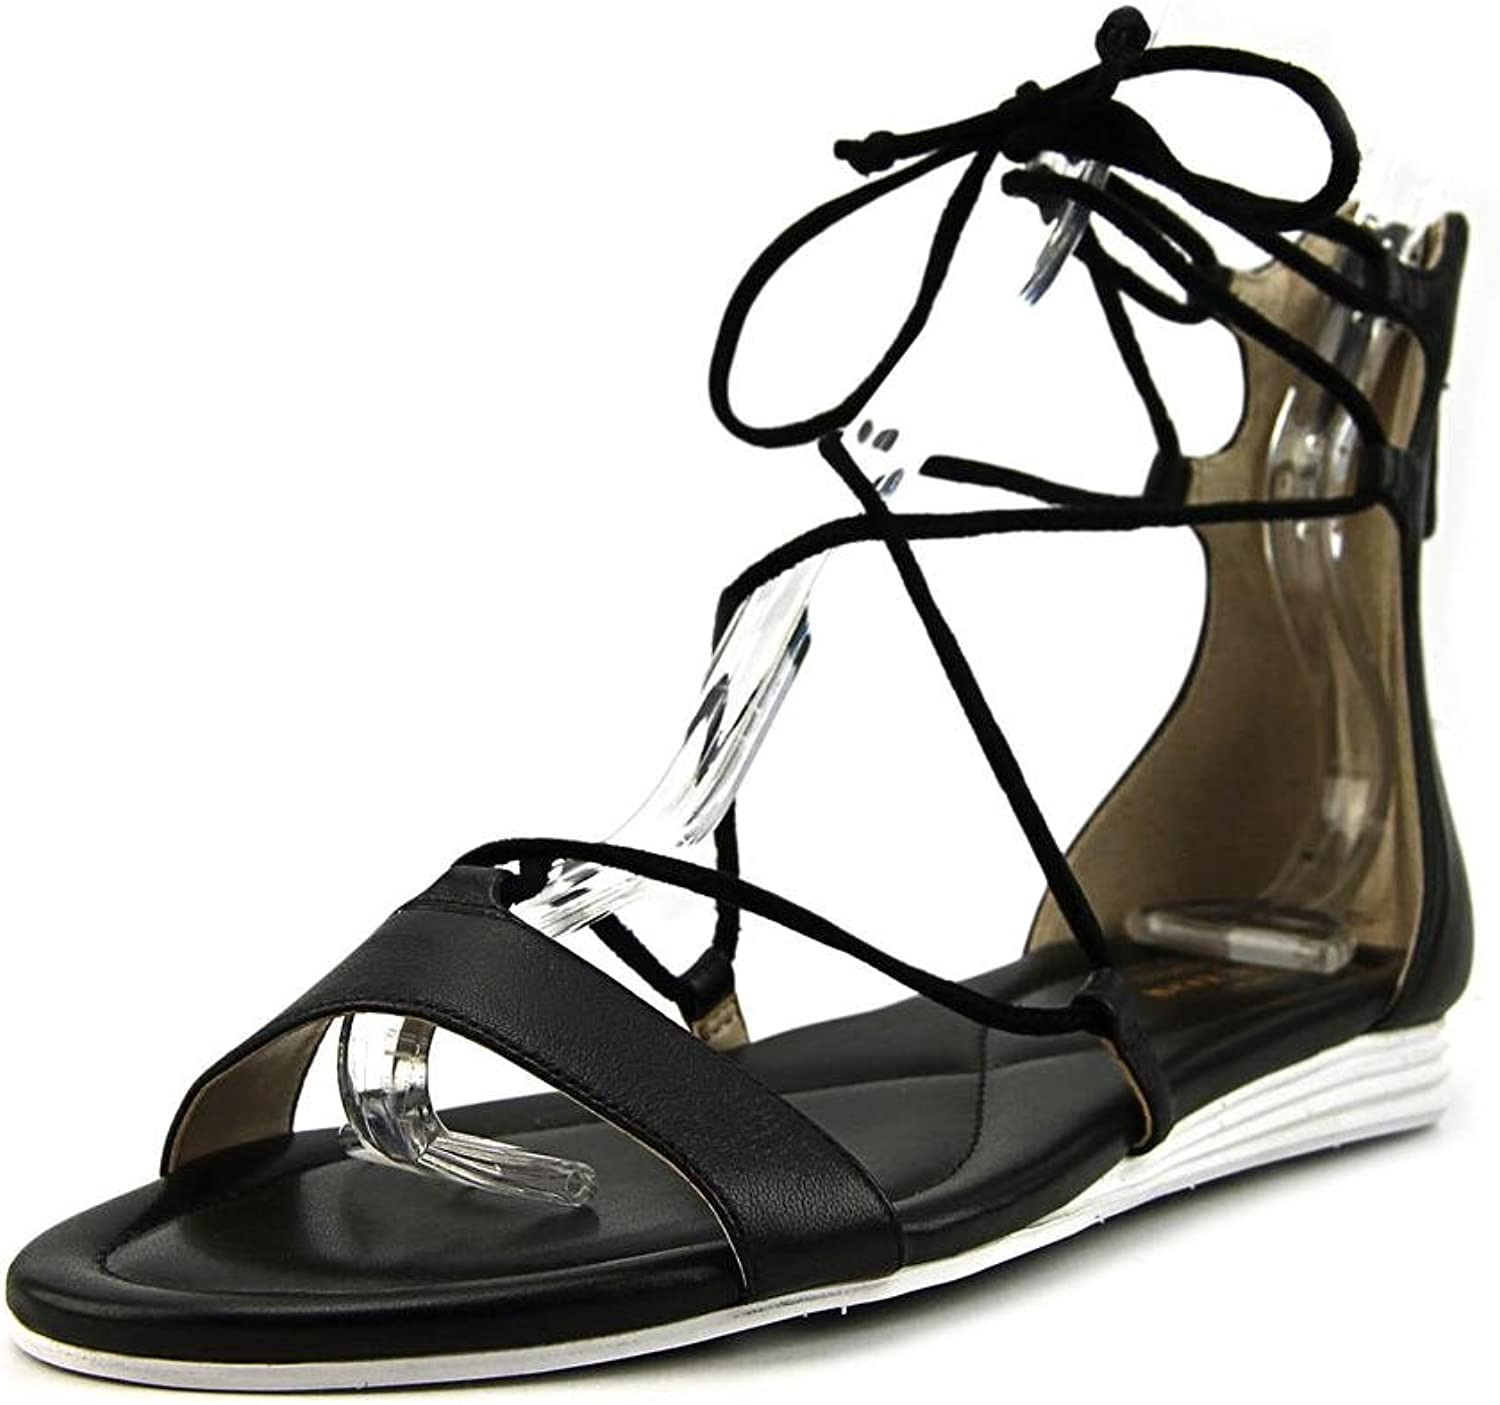 Cole Haan Original Grand Lace-Up Sandal Gladiator Sandal